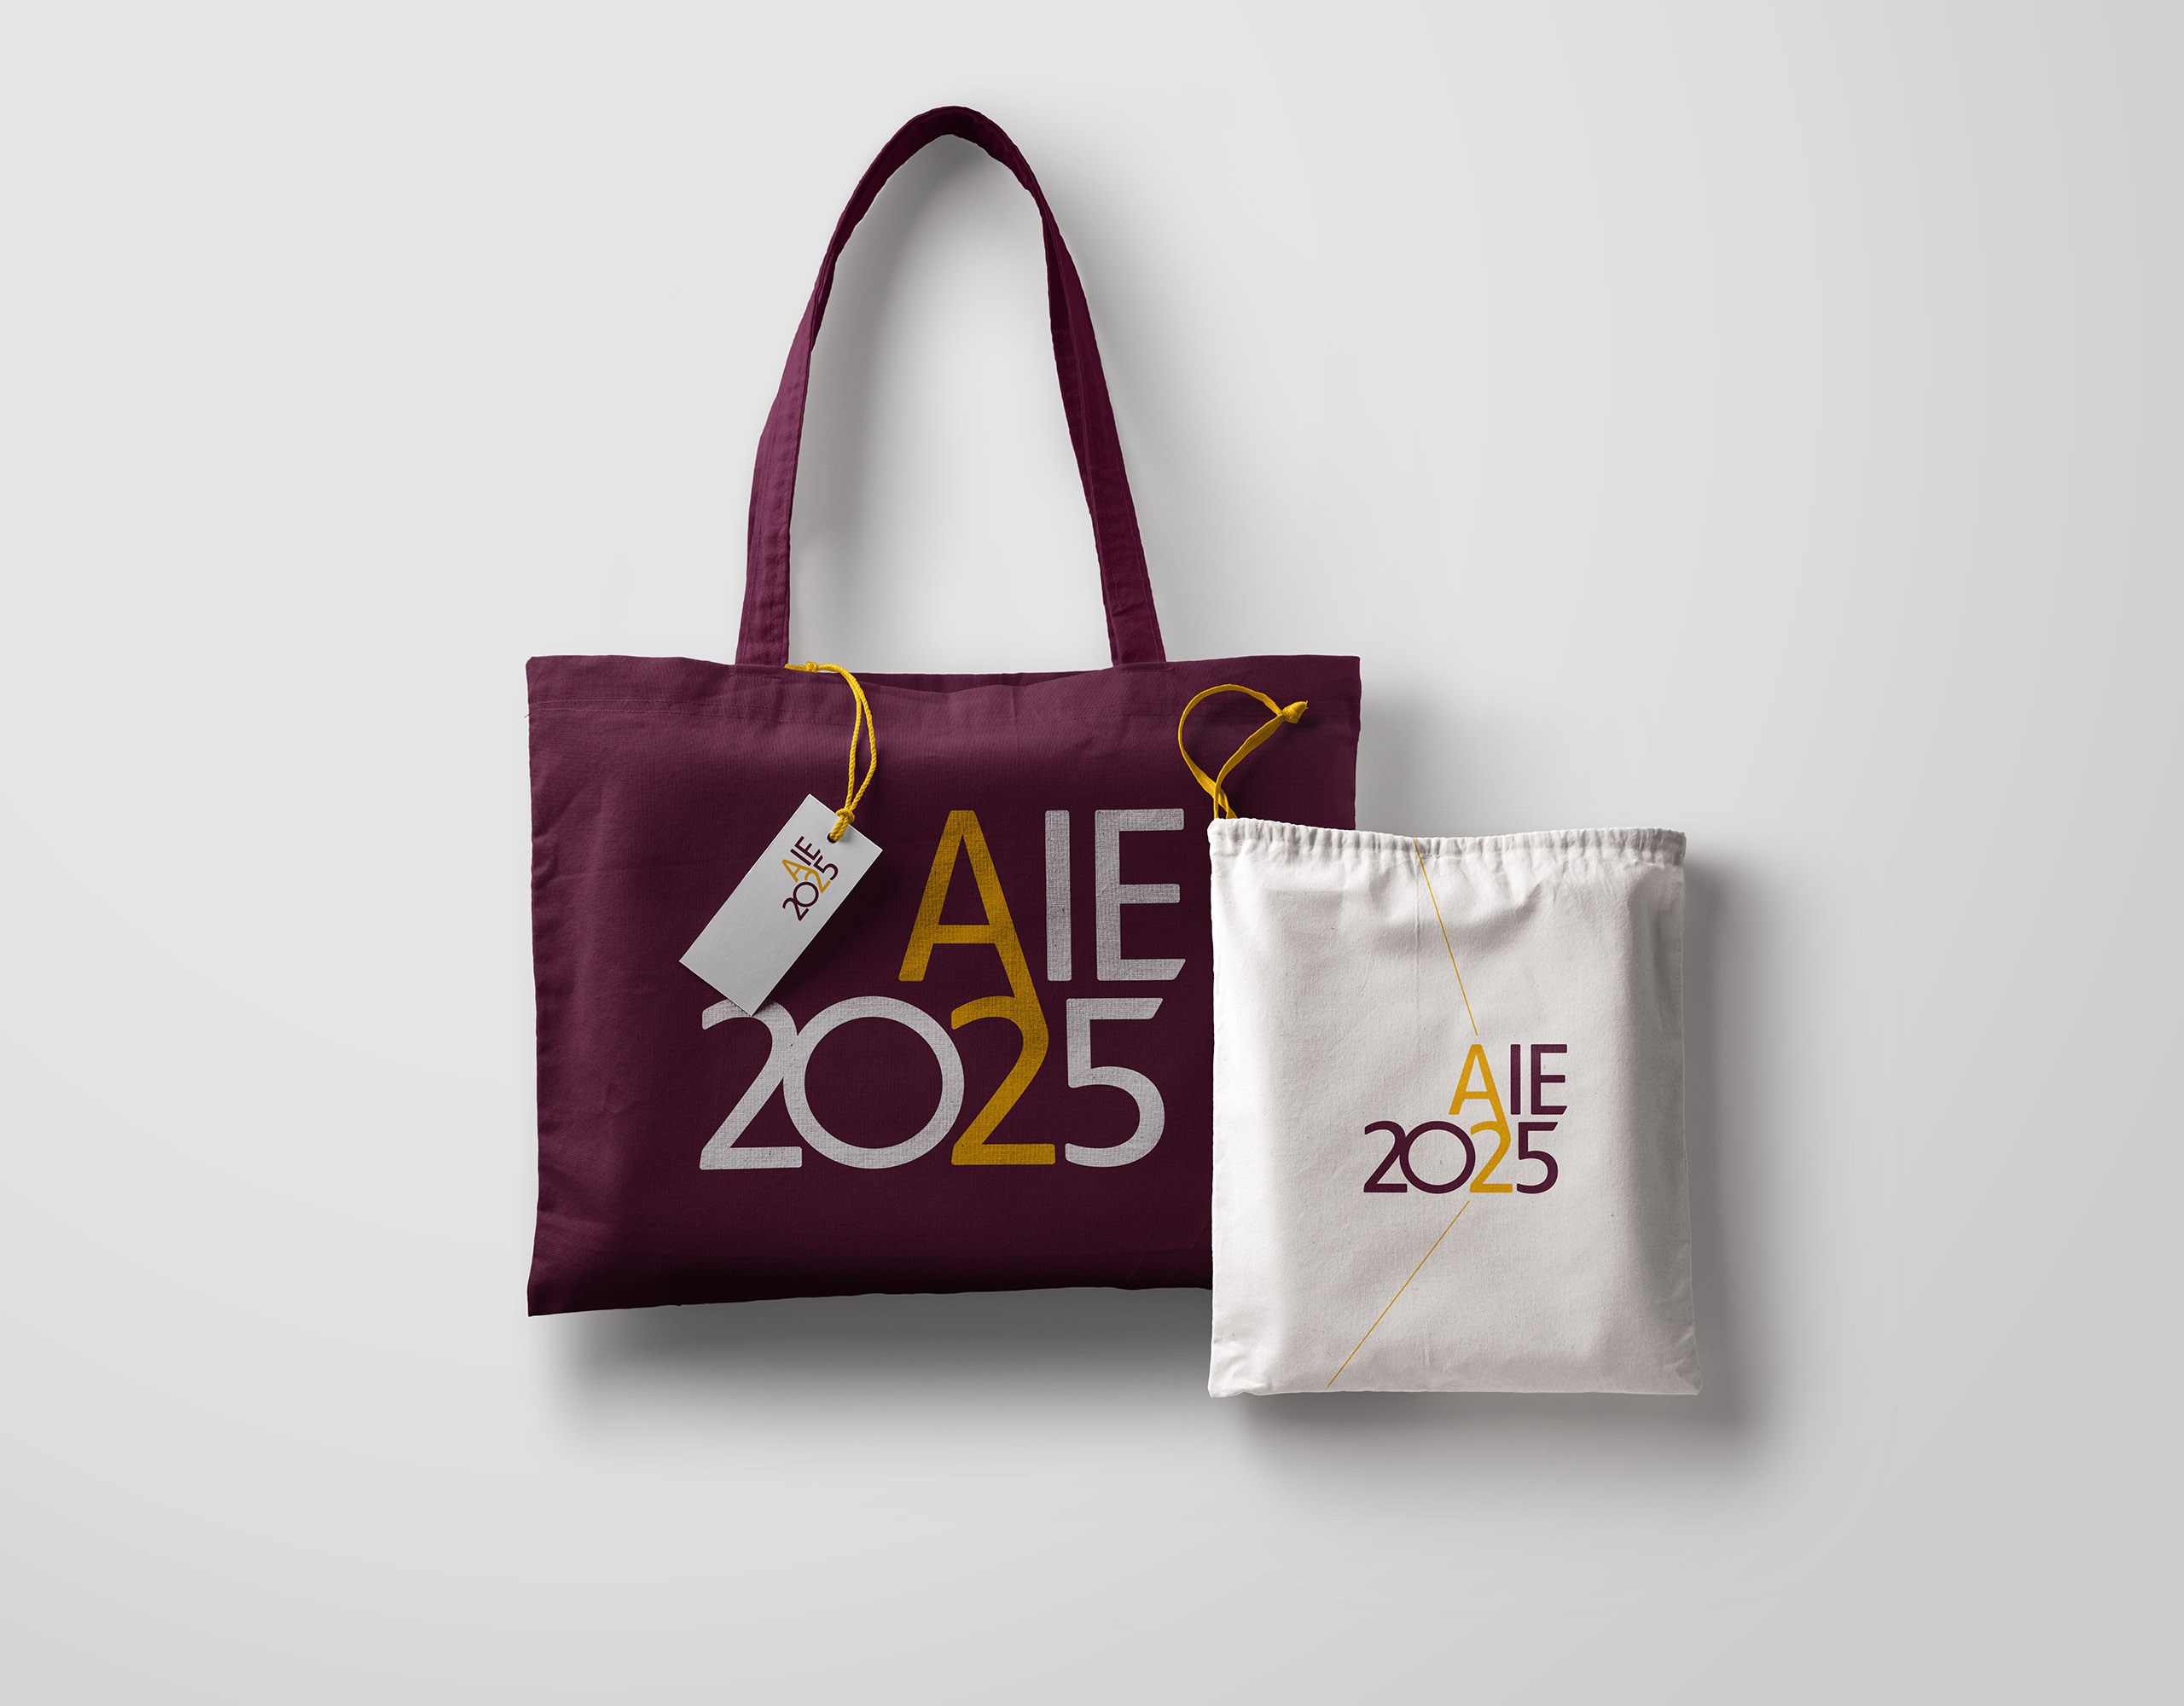 aie2025-tote-drawstring-fabric-bags-mockup